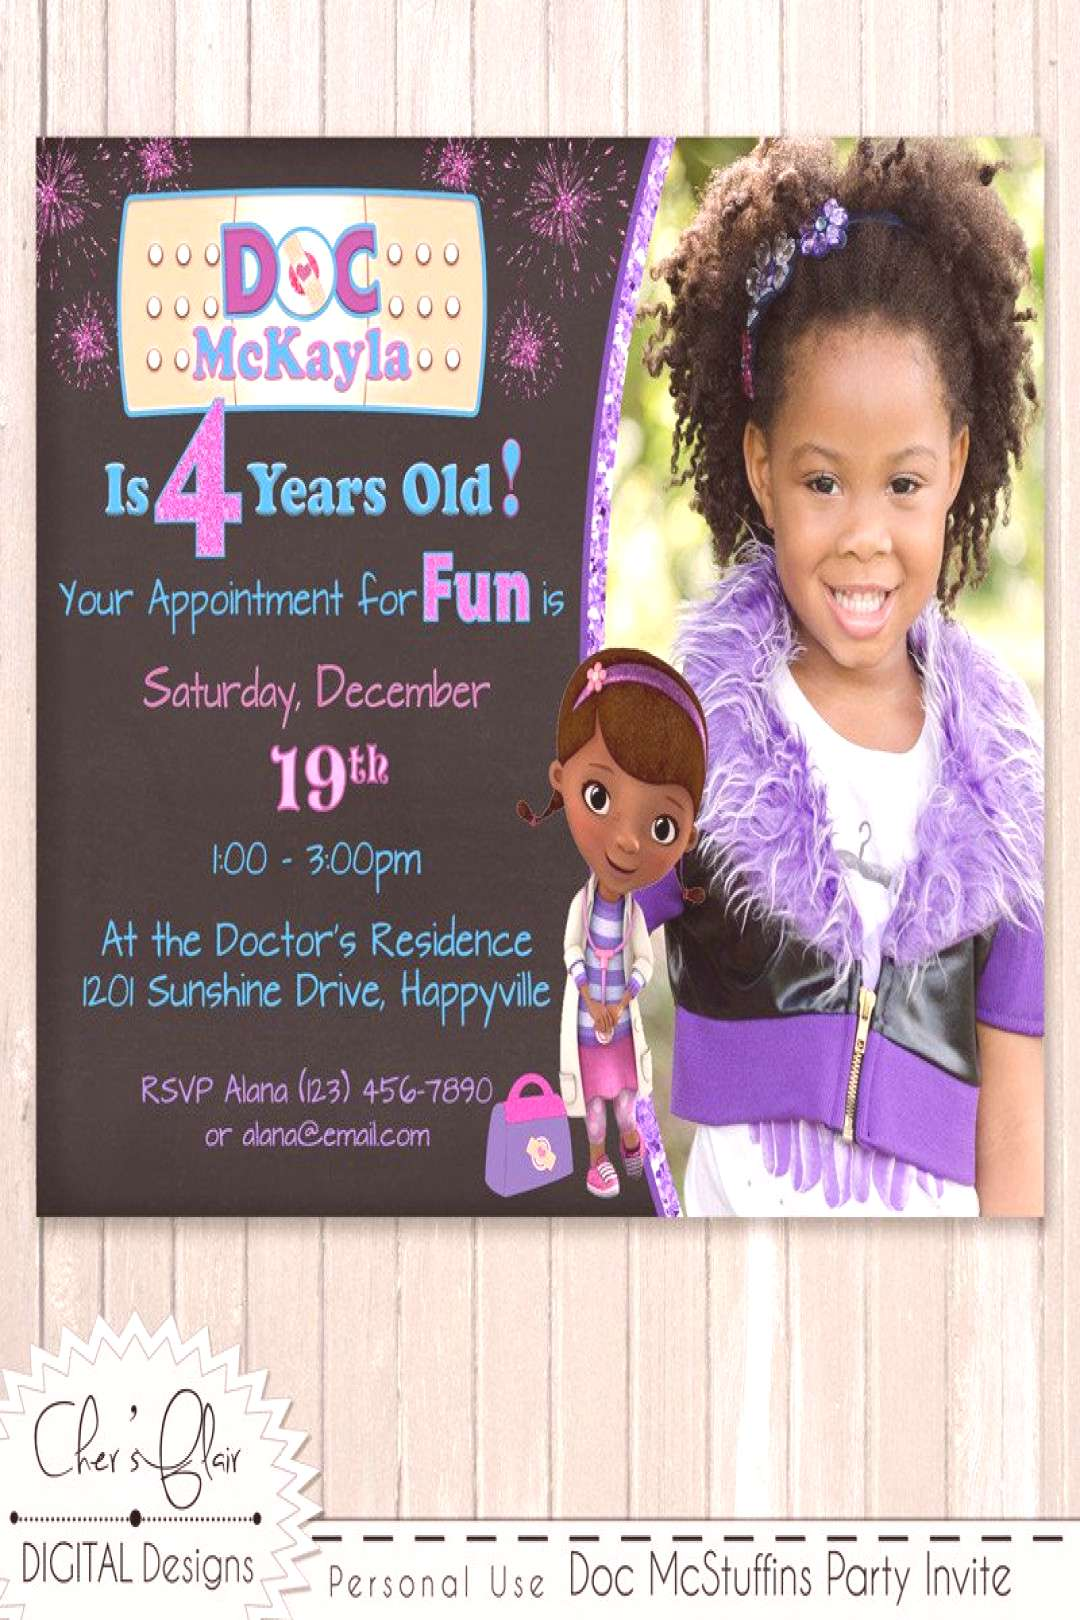 DOC MCSTUFFINS INVITATION - Customized Birthday Invitation - Digital and Printable Invitation - Hig